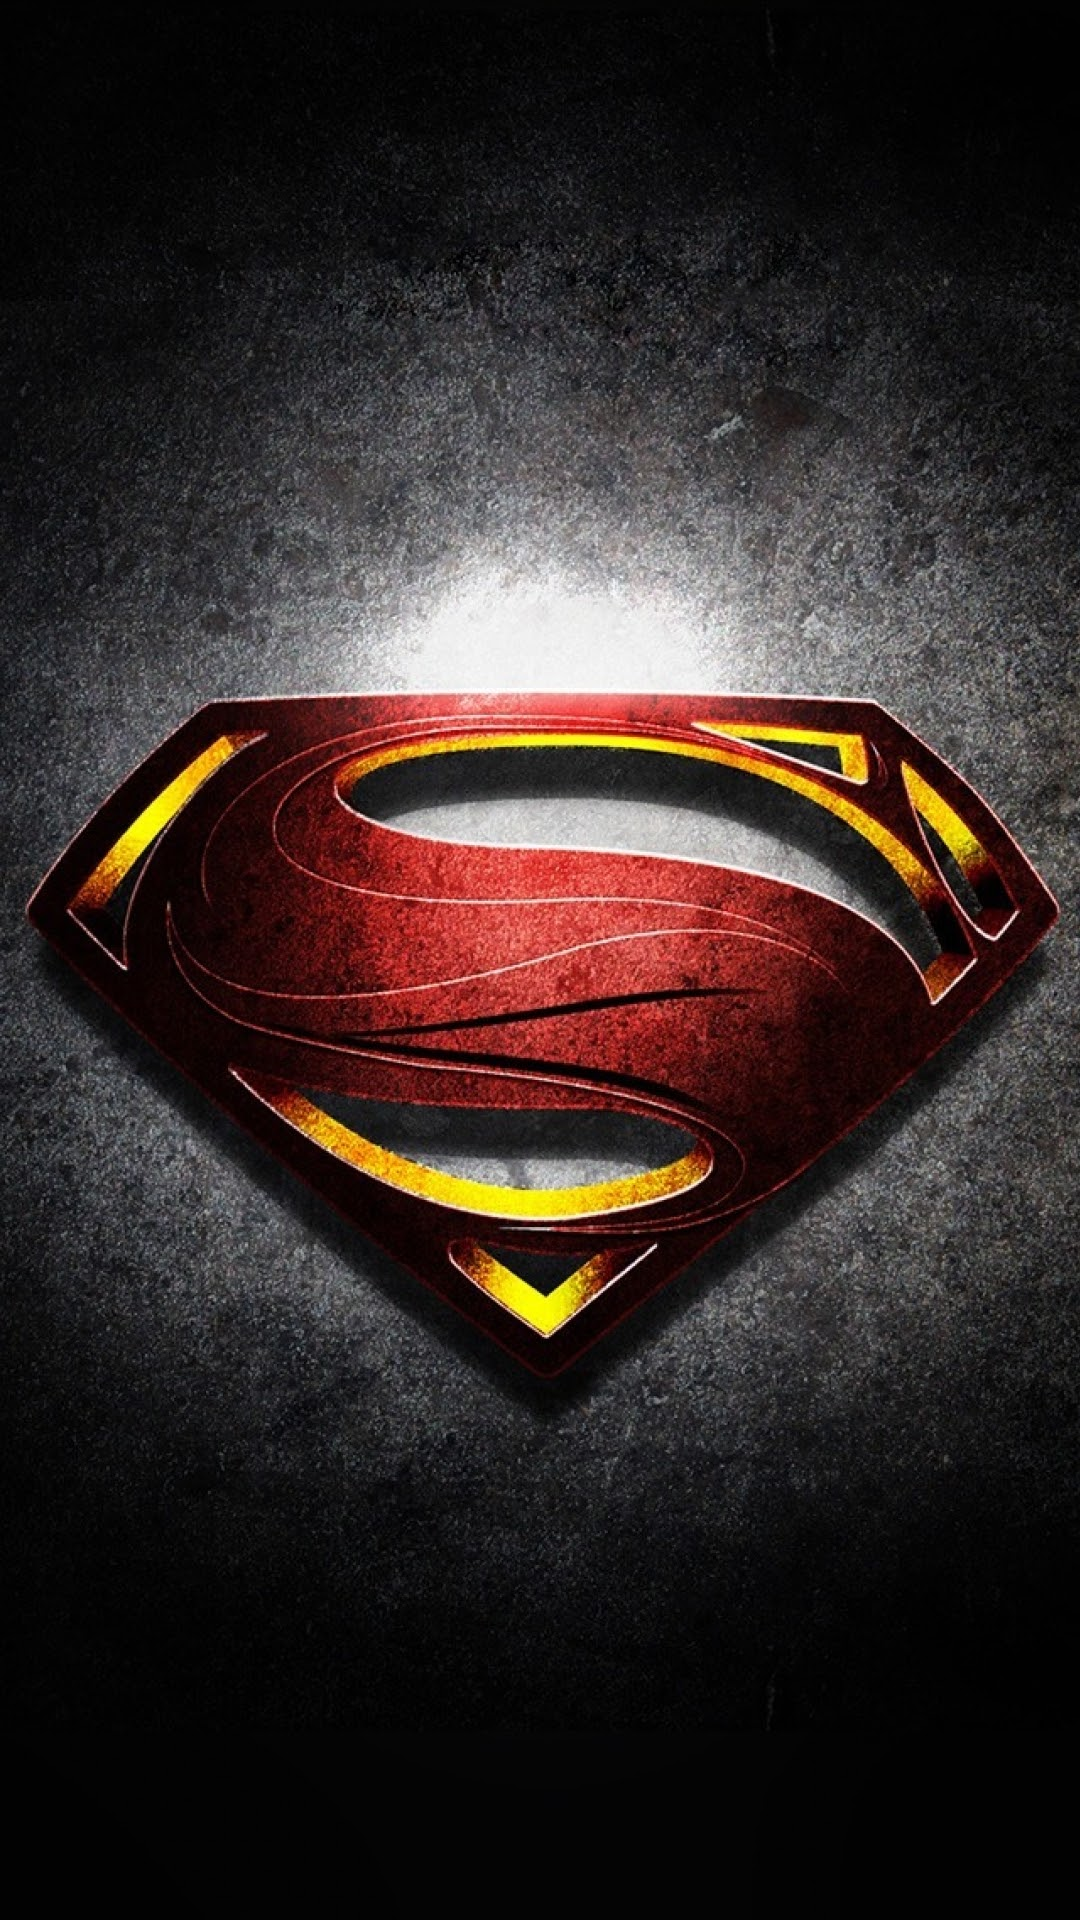 Galaxy Note Hd Wallpapers Superman Logo With Noise Background